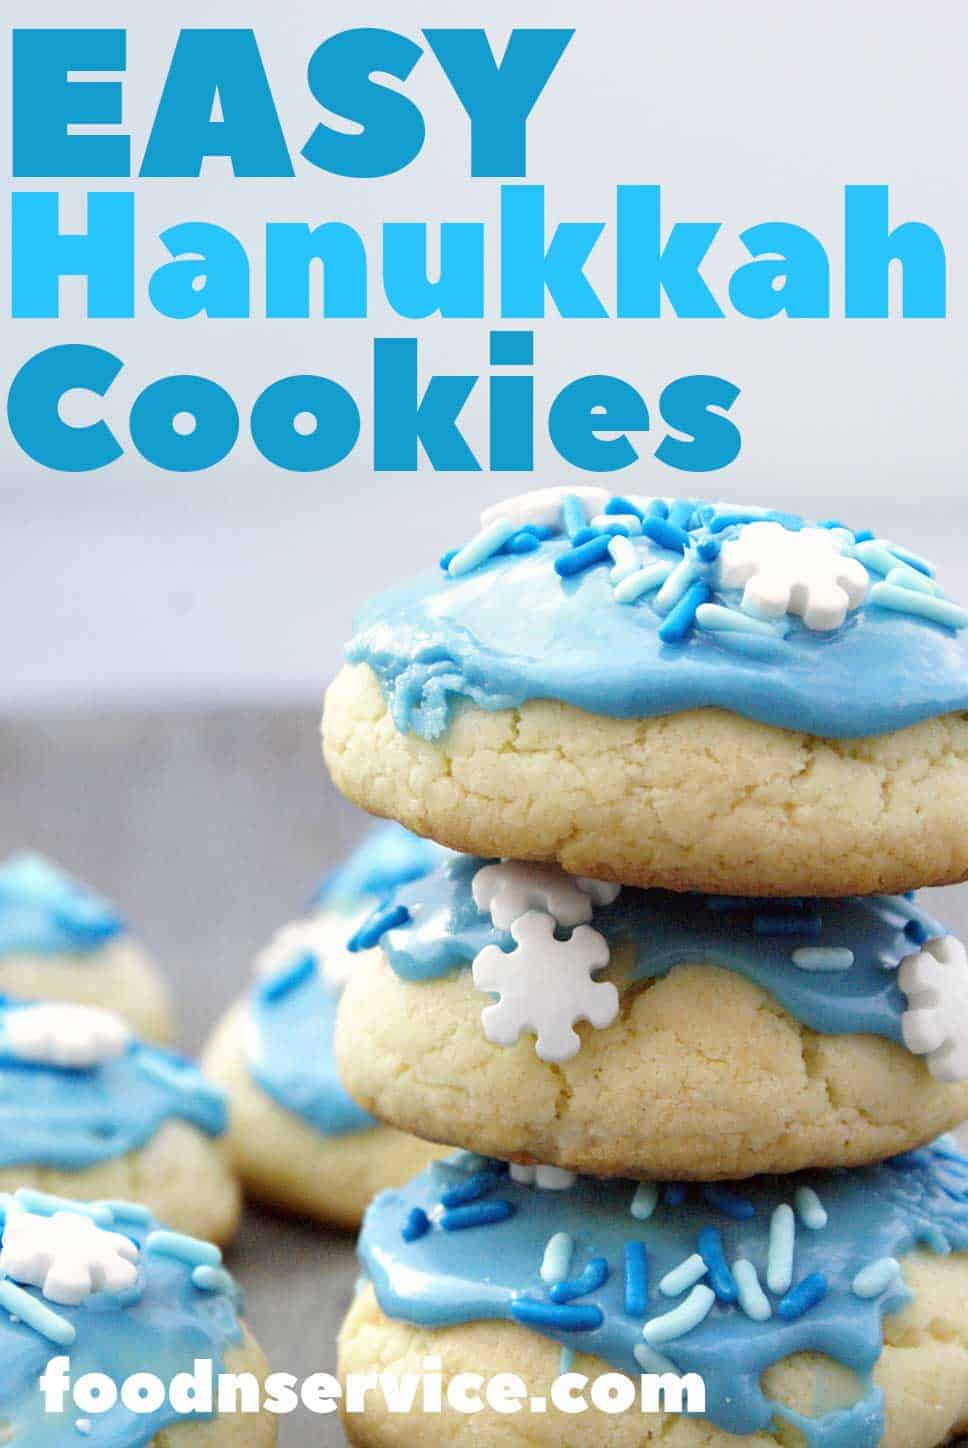 Easy hanukkah cookies recipe made from cake mix easy hanukkah cookies you can whip up in no time during the hanukkah season forumfinder Choice Image